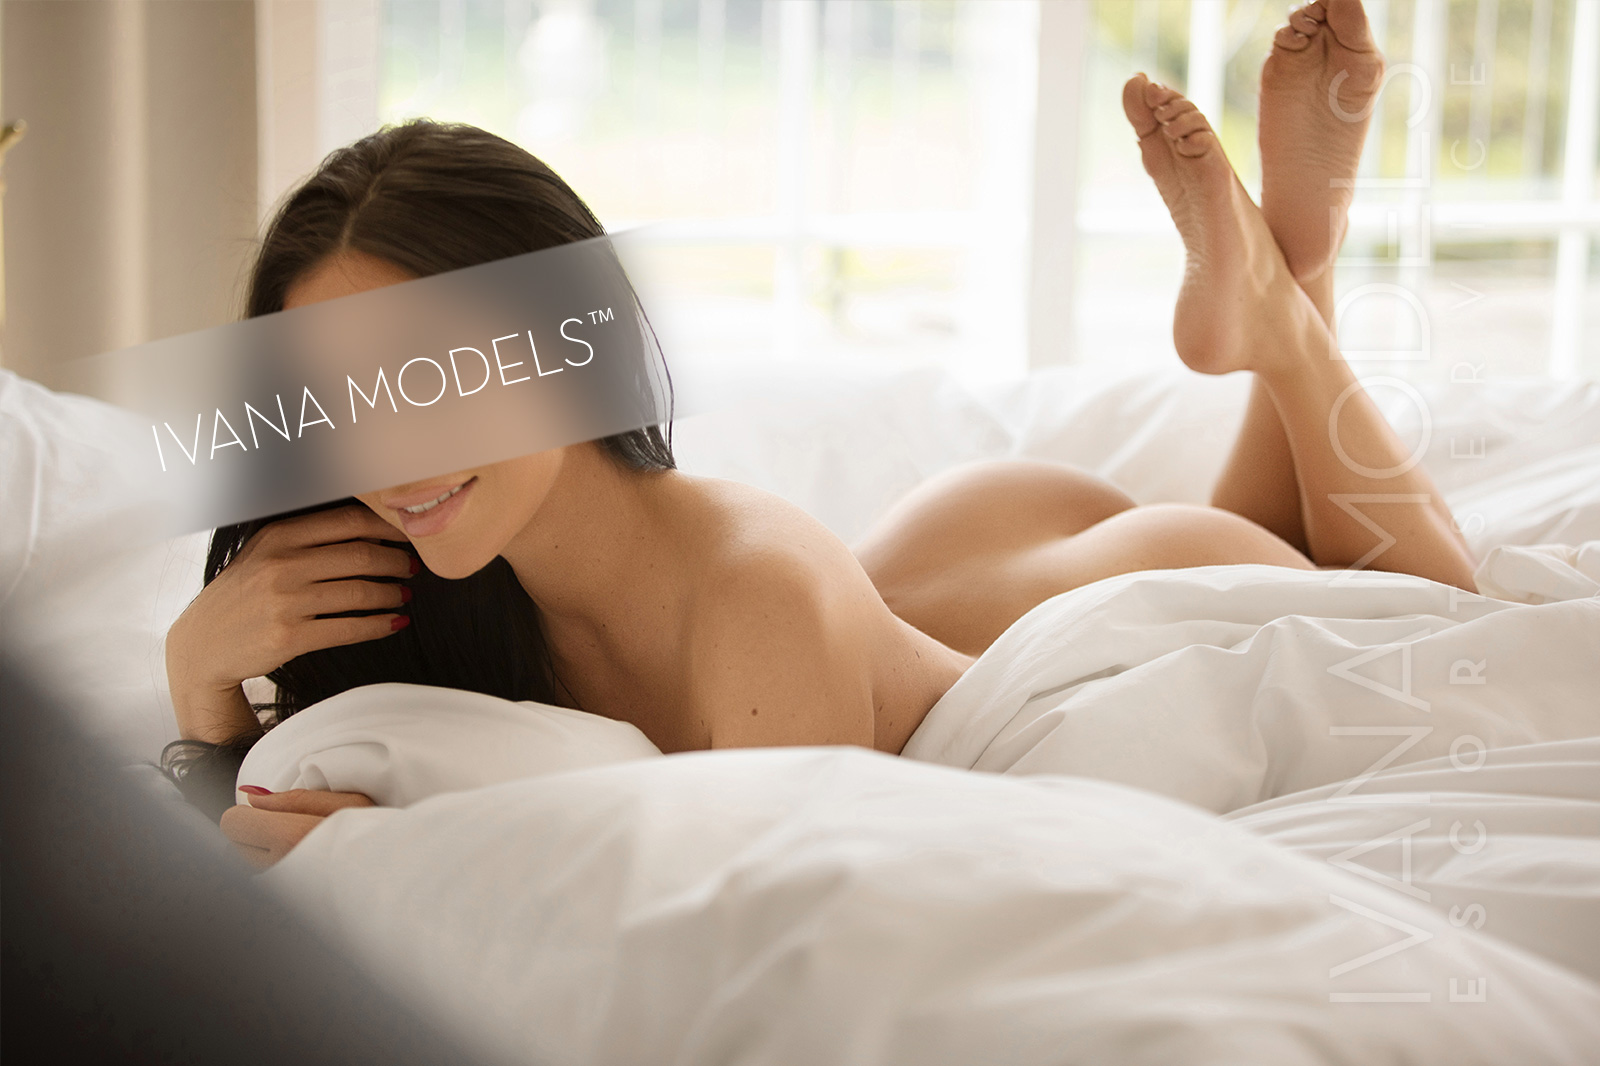 Your discreet escort service in Dusseldorf, Cologne, NRW and throughout Germany - Melissa